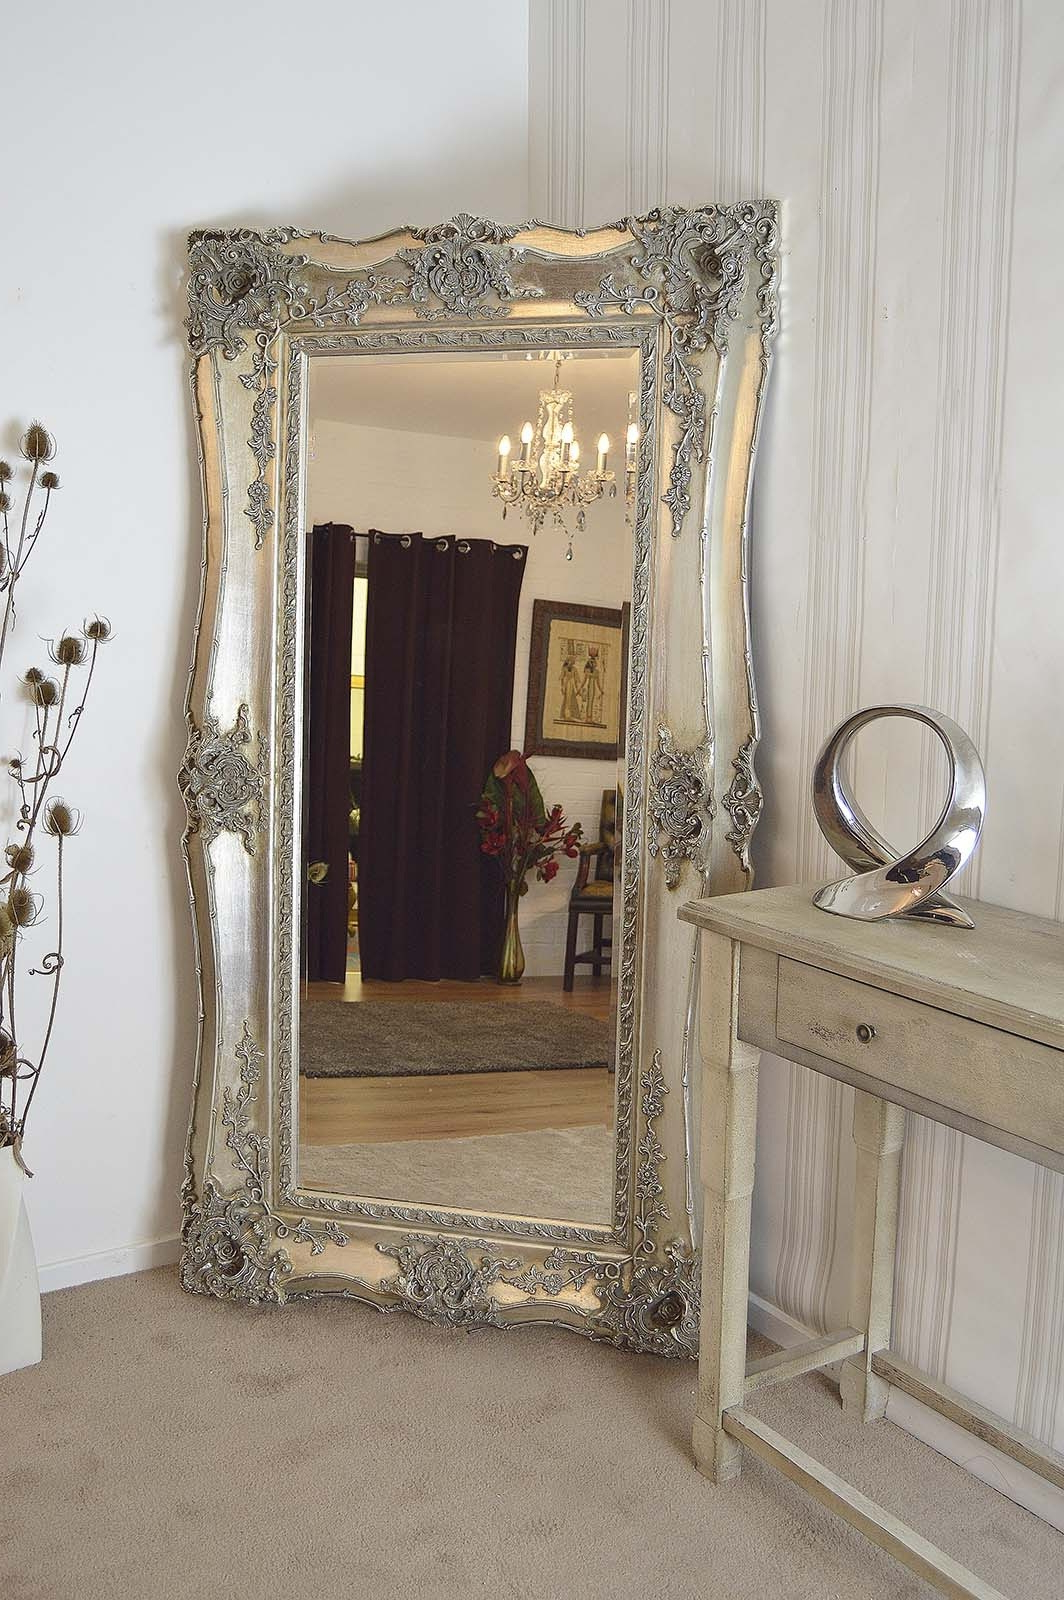 Large Wall Mirrors For Sale In Cheery Decorative Framed Mirror Throughout 2020 Decorative Full Length Wall Mirrors (View 20 of 20)